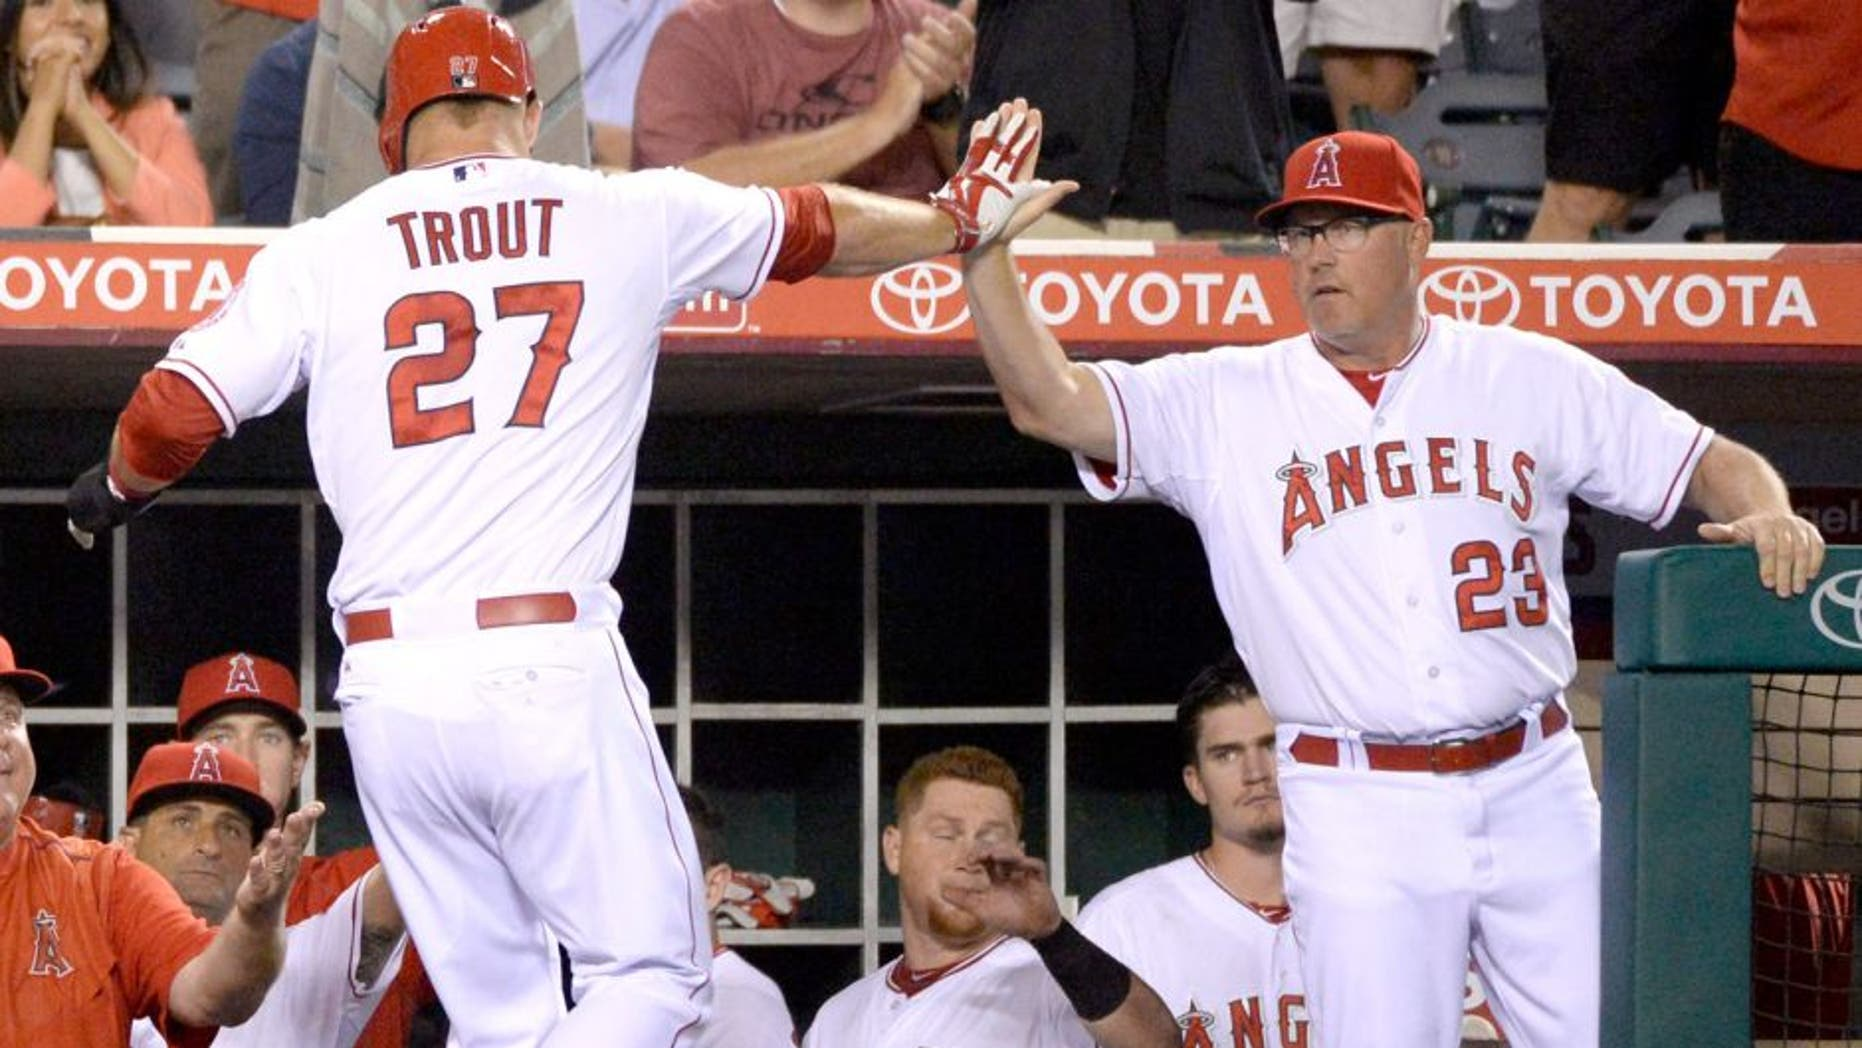 Aug 7, 2015; Anaheim, CA, USA; Los Angeles Angels pitching coach Mike Butcher (23) congratulates Los Angeles Angels center fielder Mike Trout (27) for scoring against the Baltimore Orioles during the fourth inning at Angel Stadium of Anaheim. Mandatory Credit: Richard Mackson-USA TODAY Sports